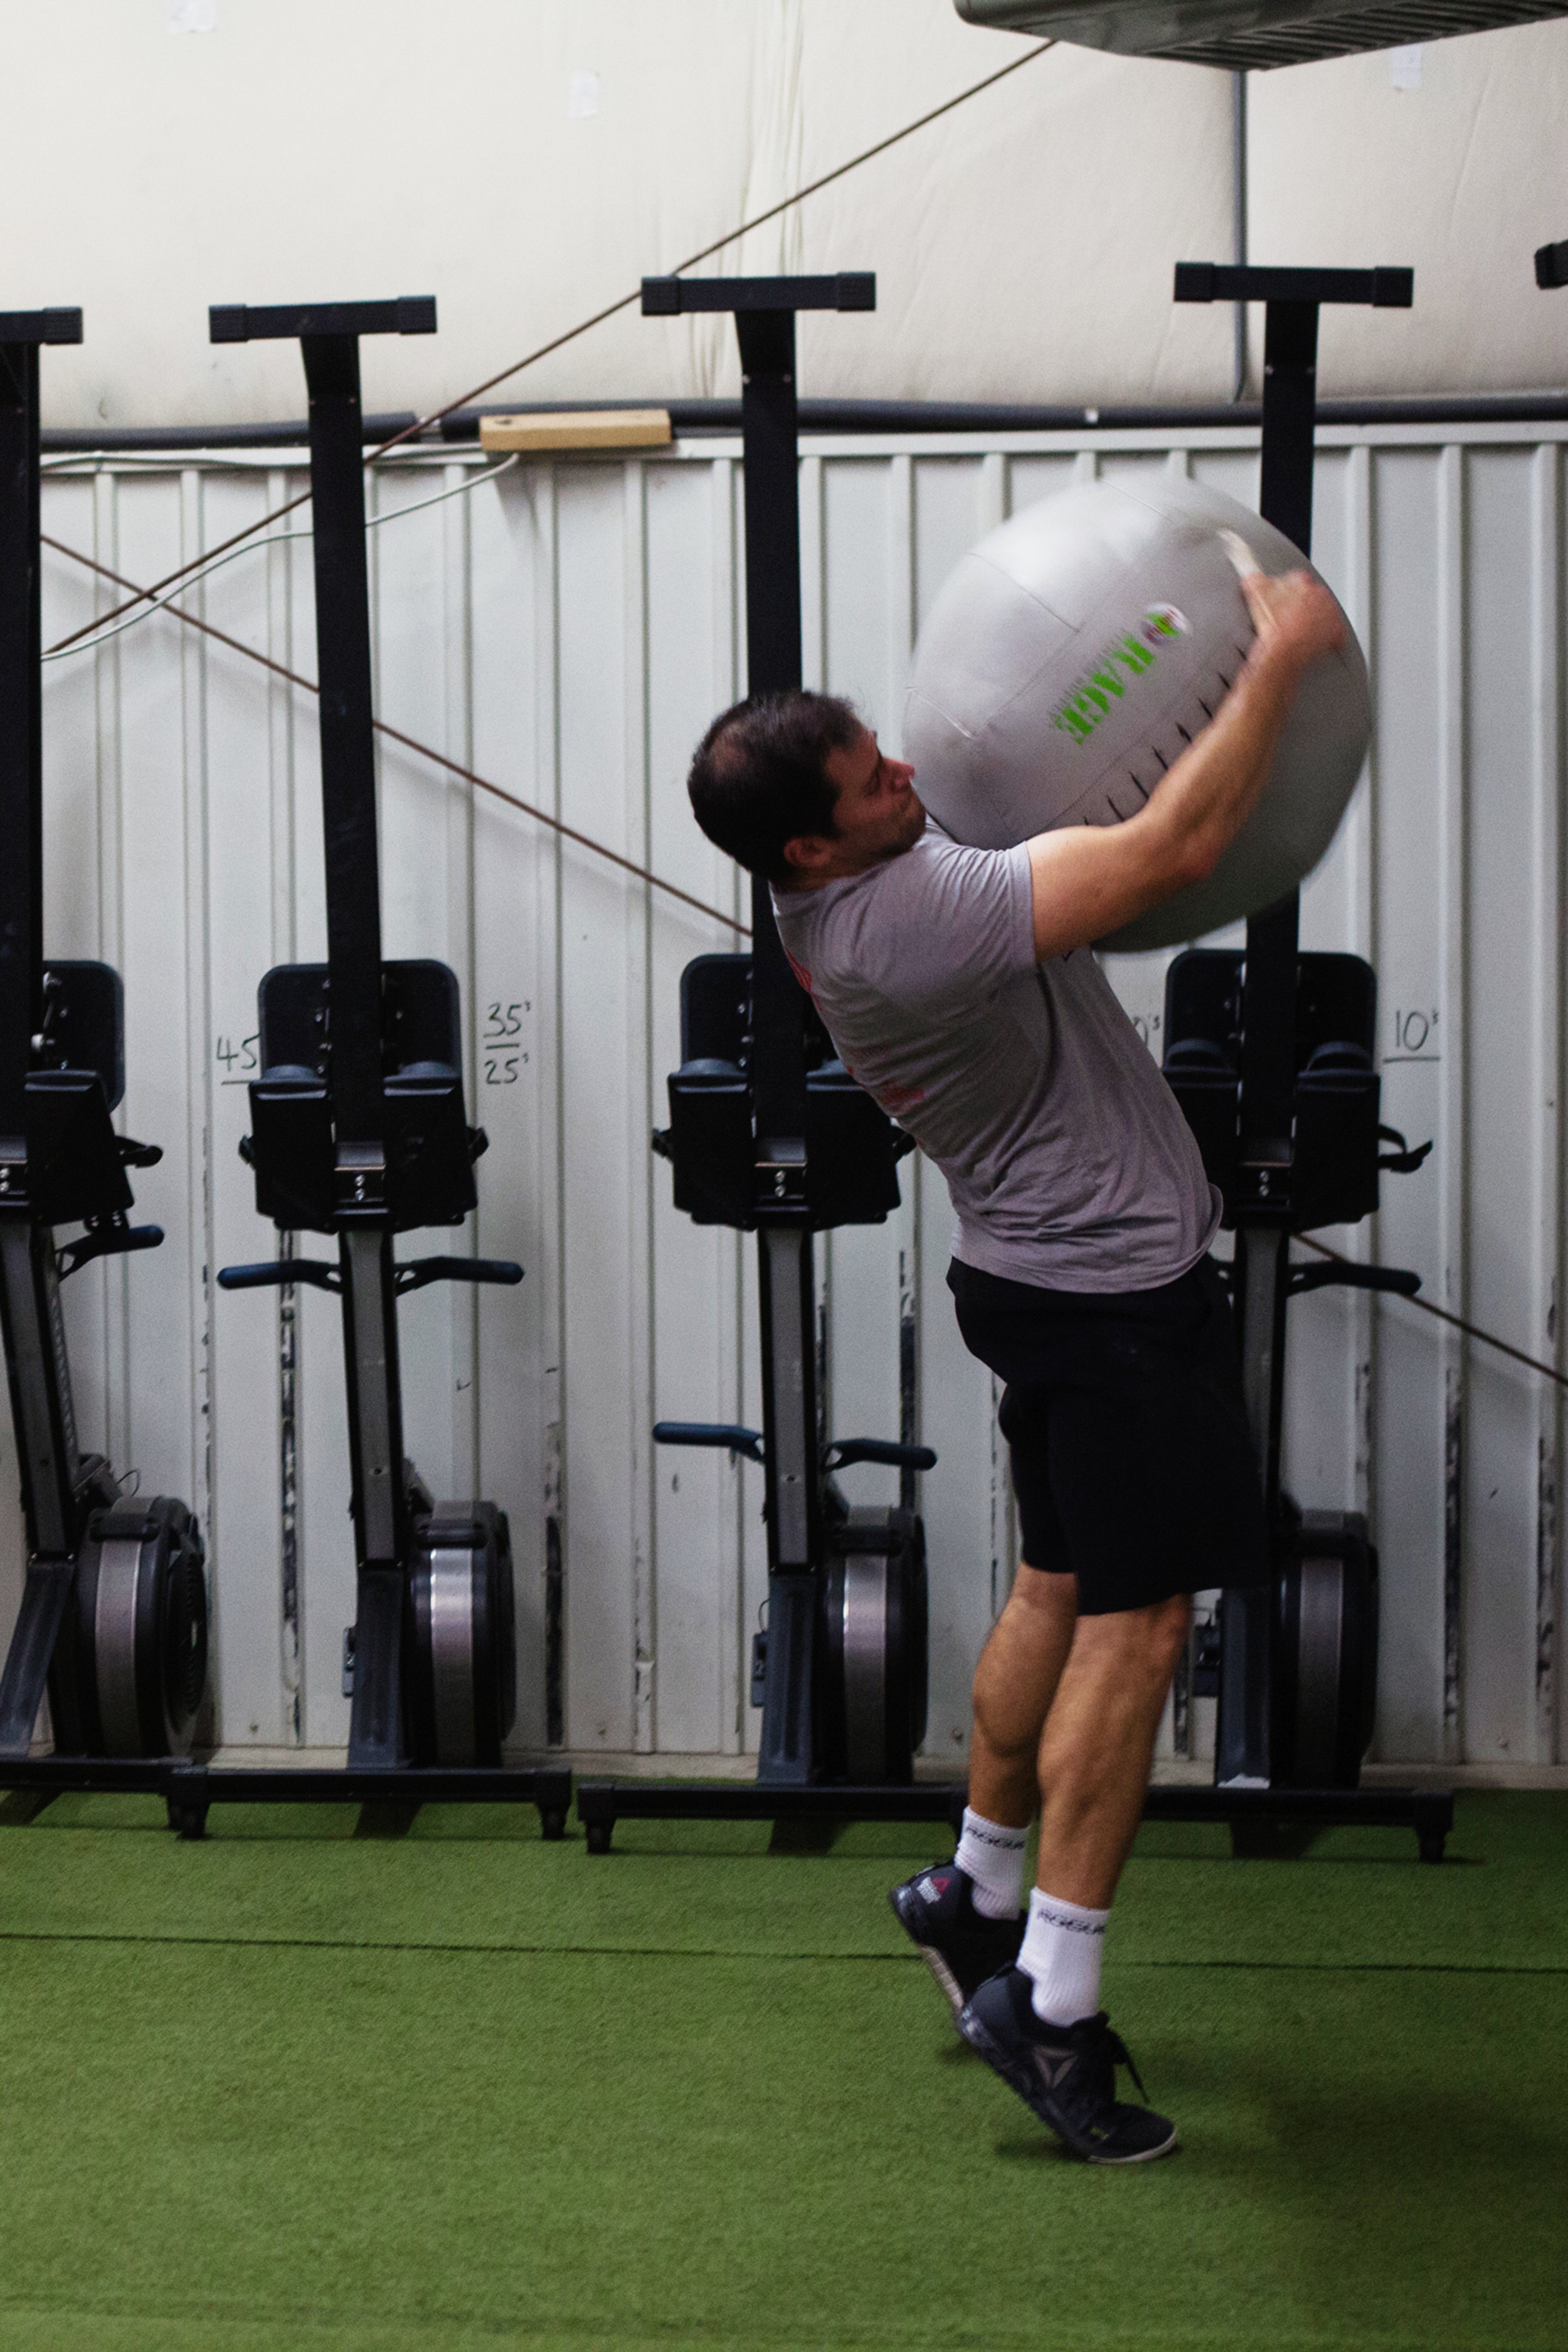 warm up - crossfit - throwing stuff